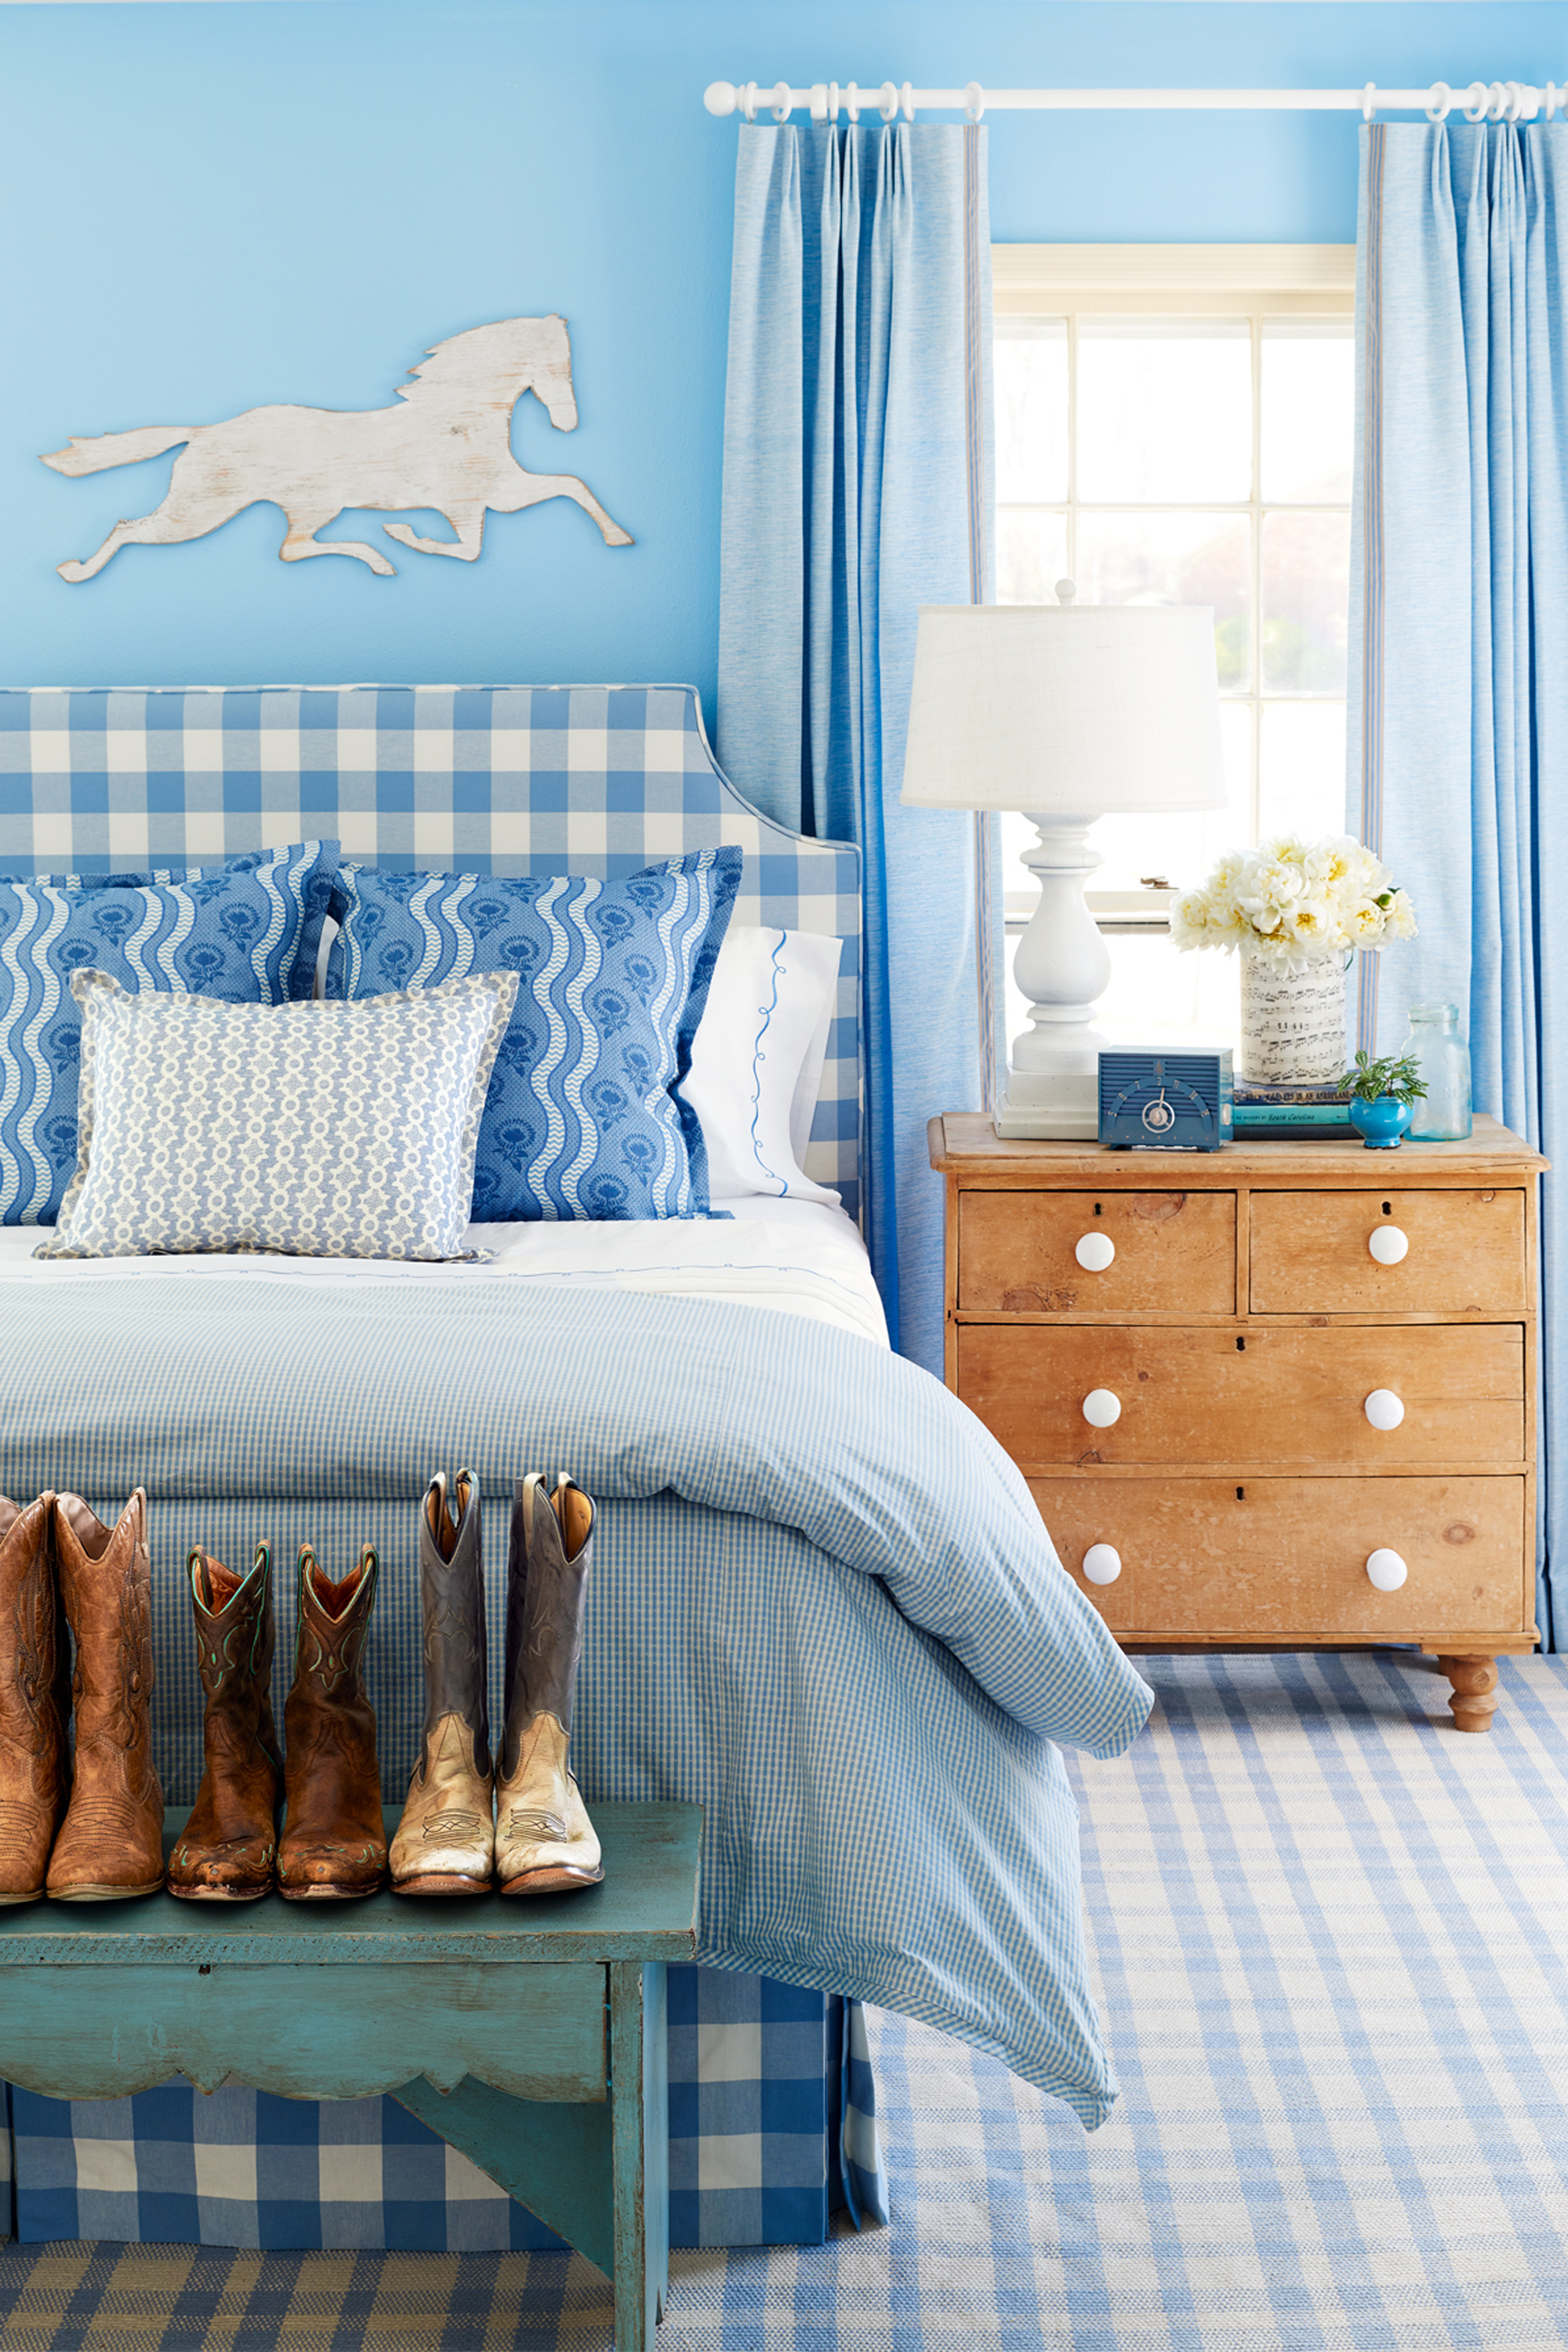 Blue bedroom design ideas - Blue Bedroom Design Ideas 0